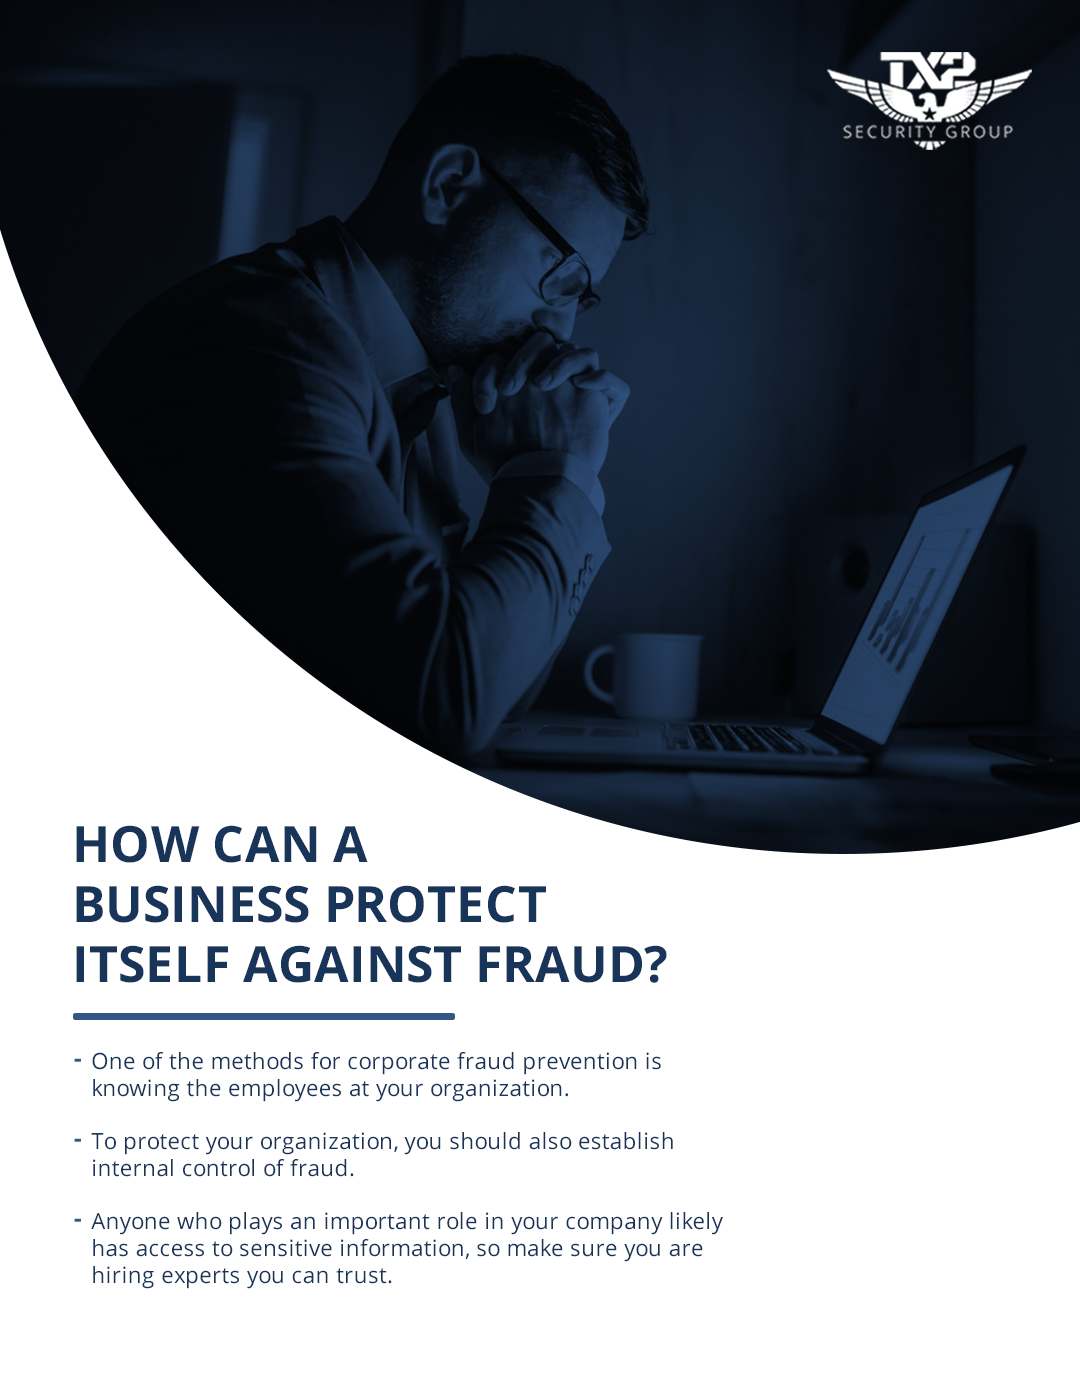 How Can Businesses Protect Itself from Corporate Fraud